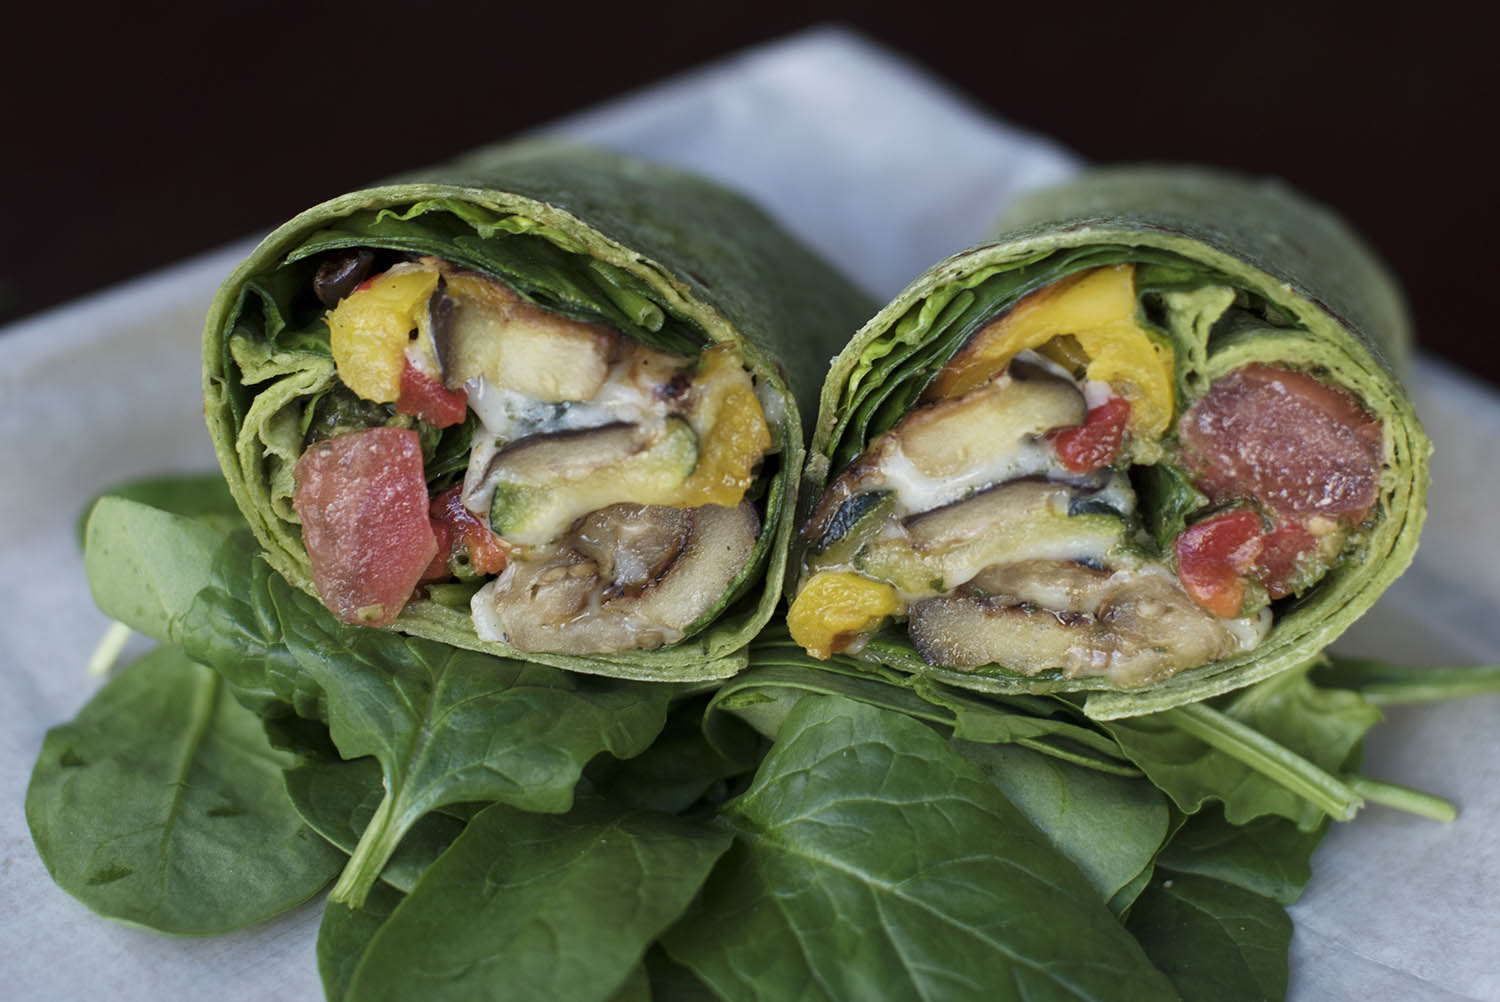 The Apostrophe, a wrap available at Apostrophe Cafe at Proctors. Photo taken Wednesday, February 14, 2018.